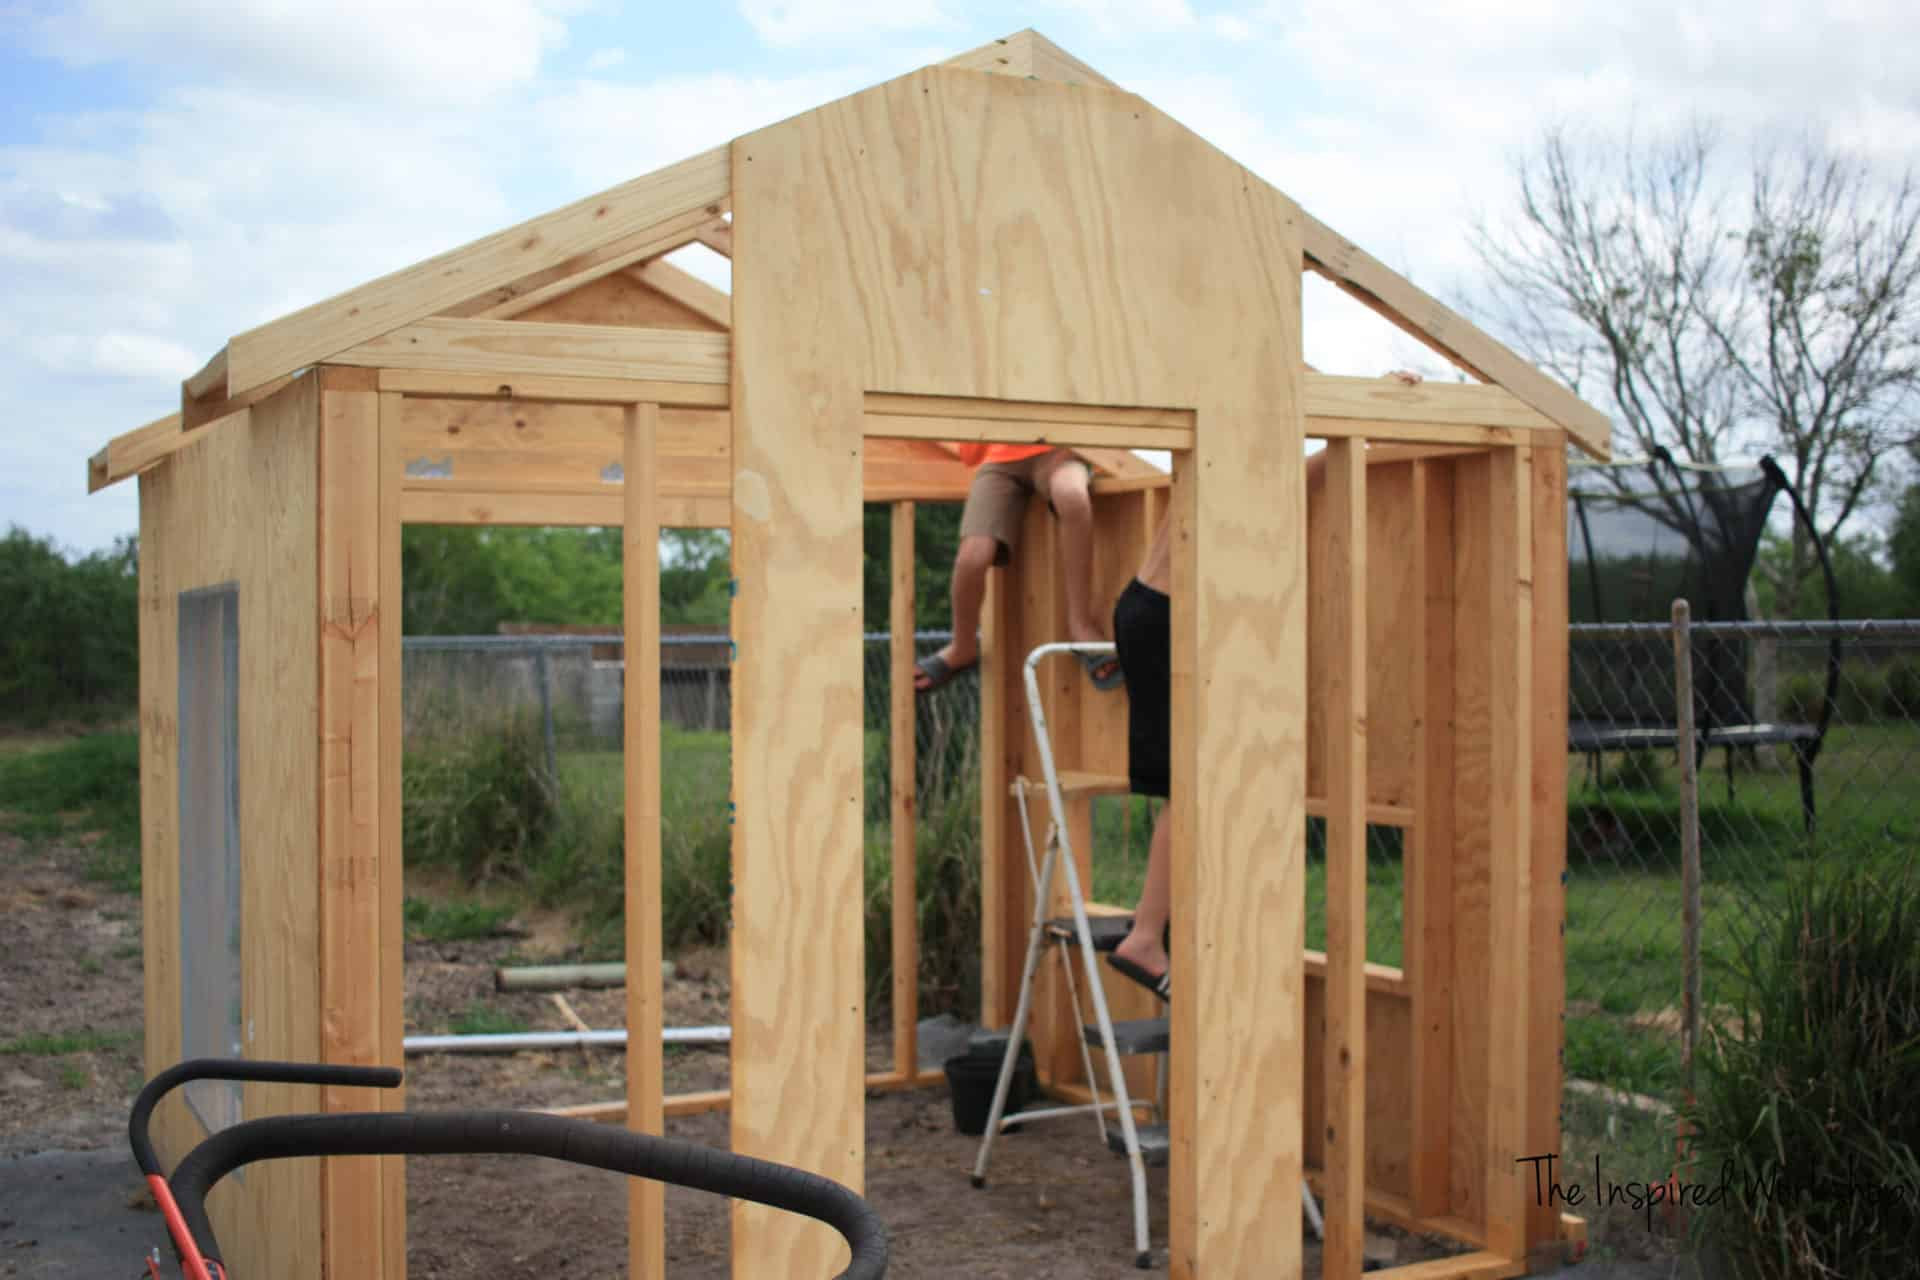 DIY chicken coop plans - free printable plans to build your own large chicken coop with run